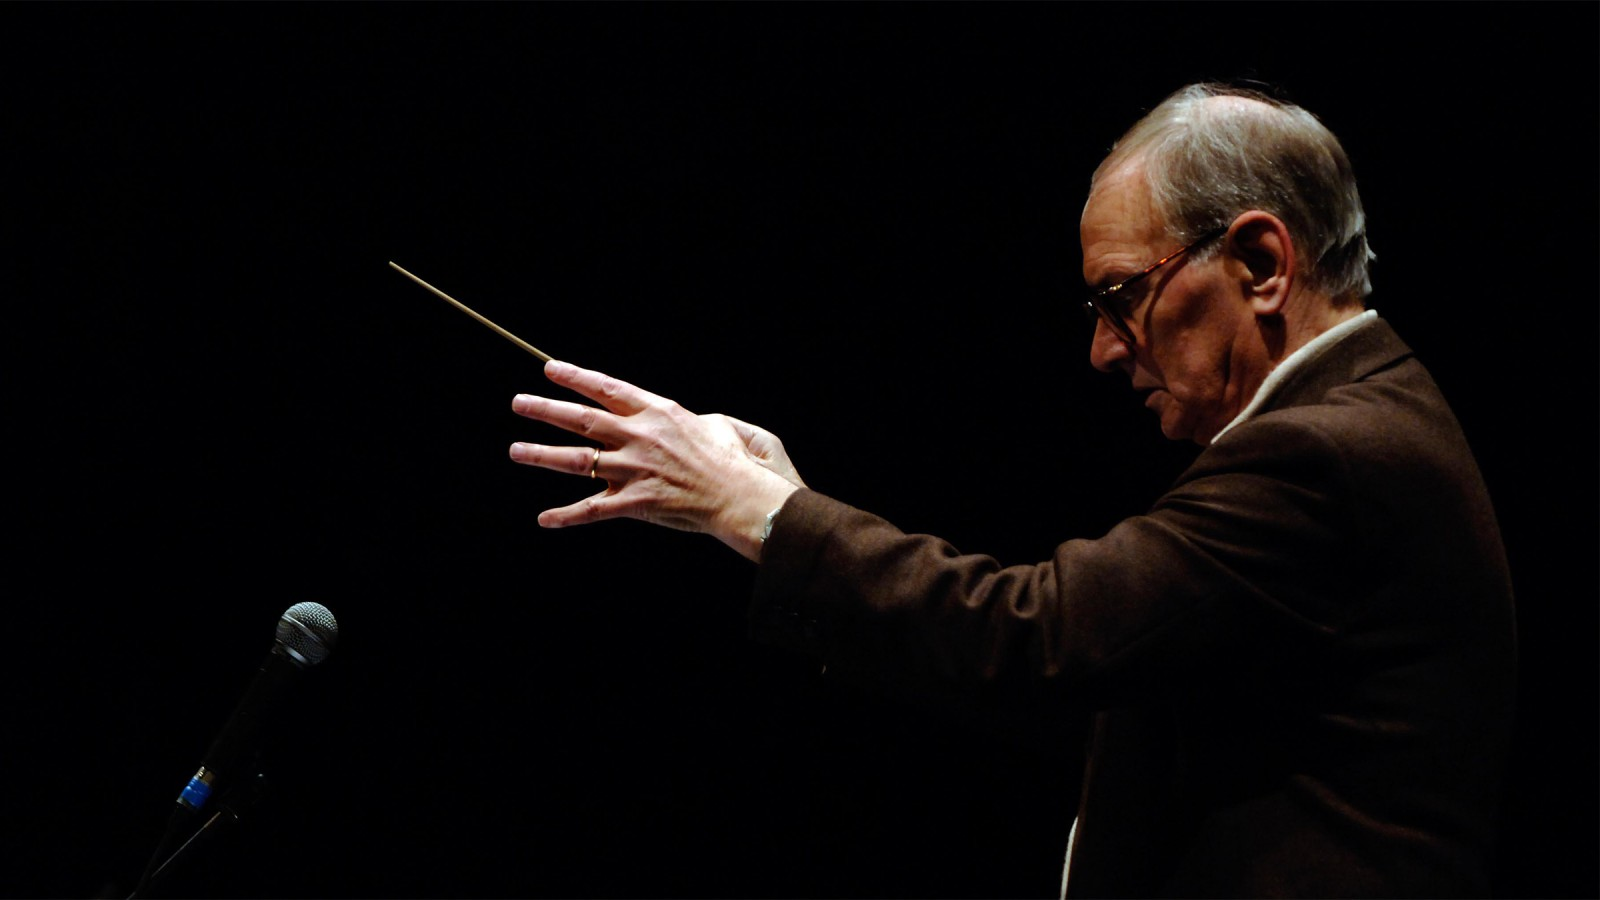 Beyond the Western: The Staggering Range of Ennio Morricone